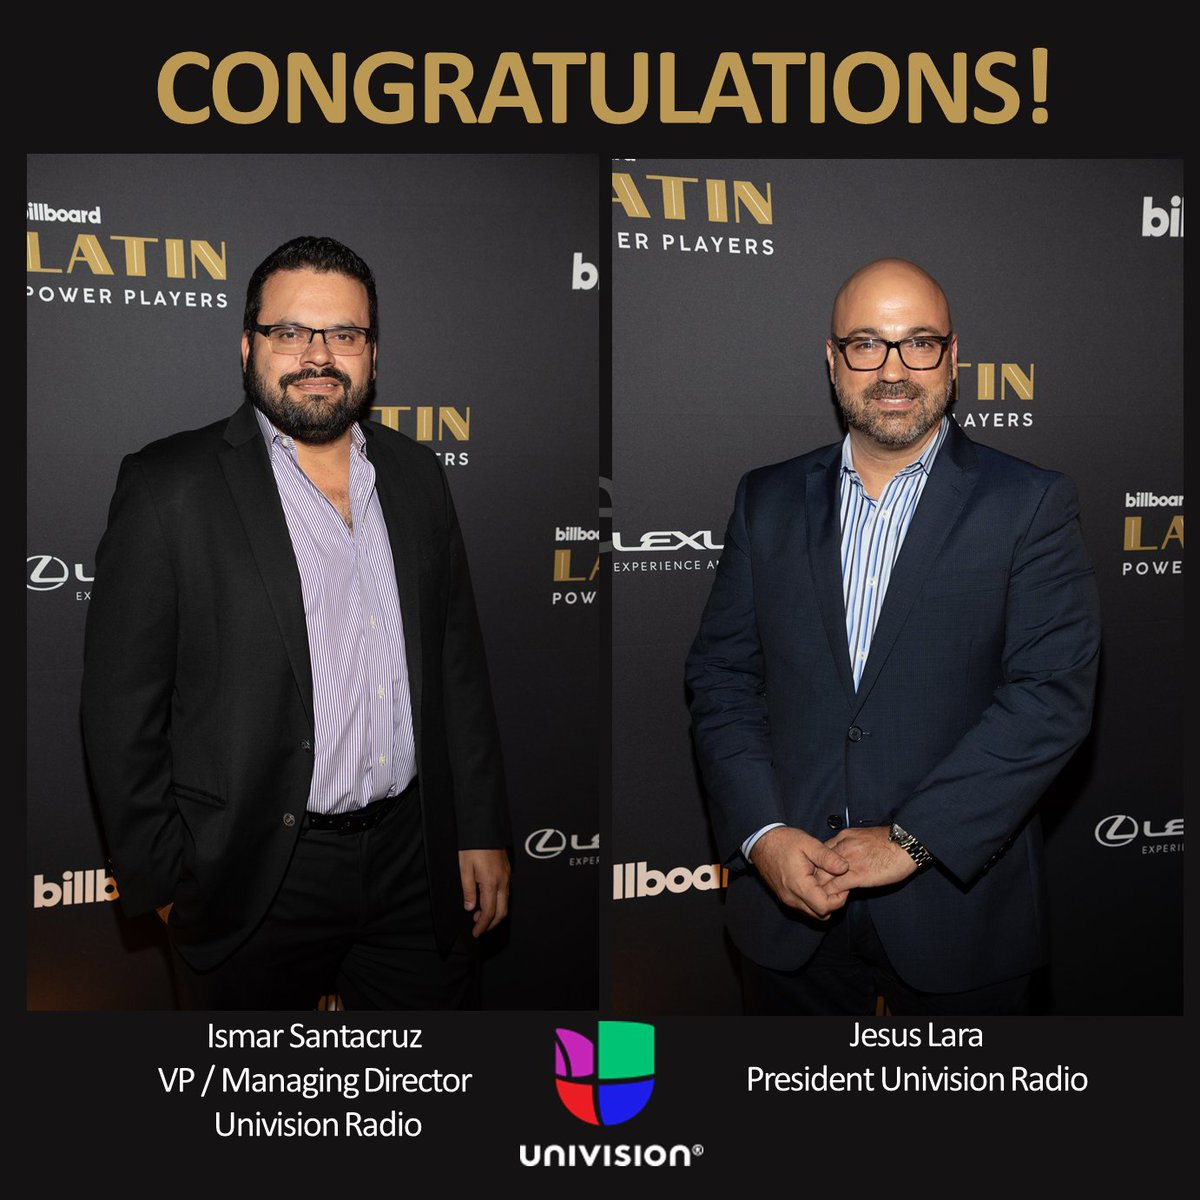 Univision Public Relations on Twitter: